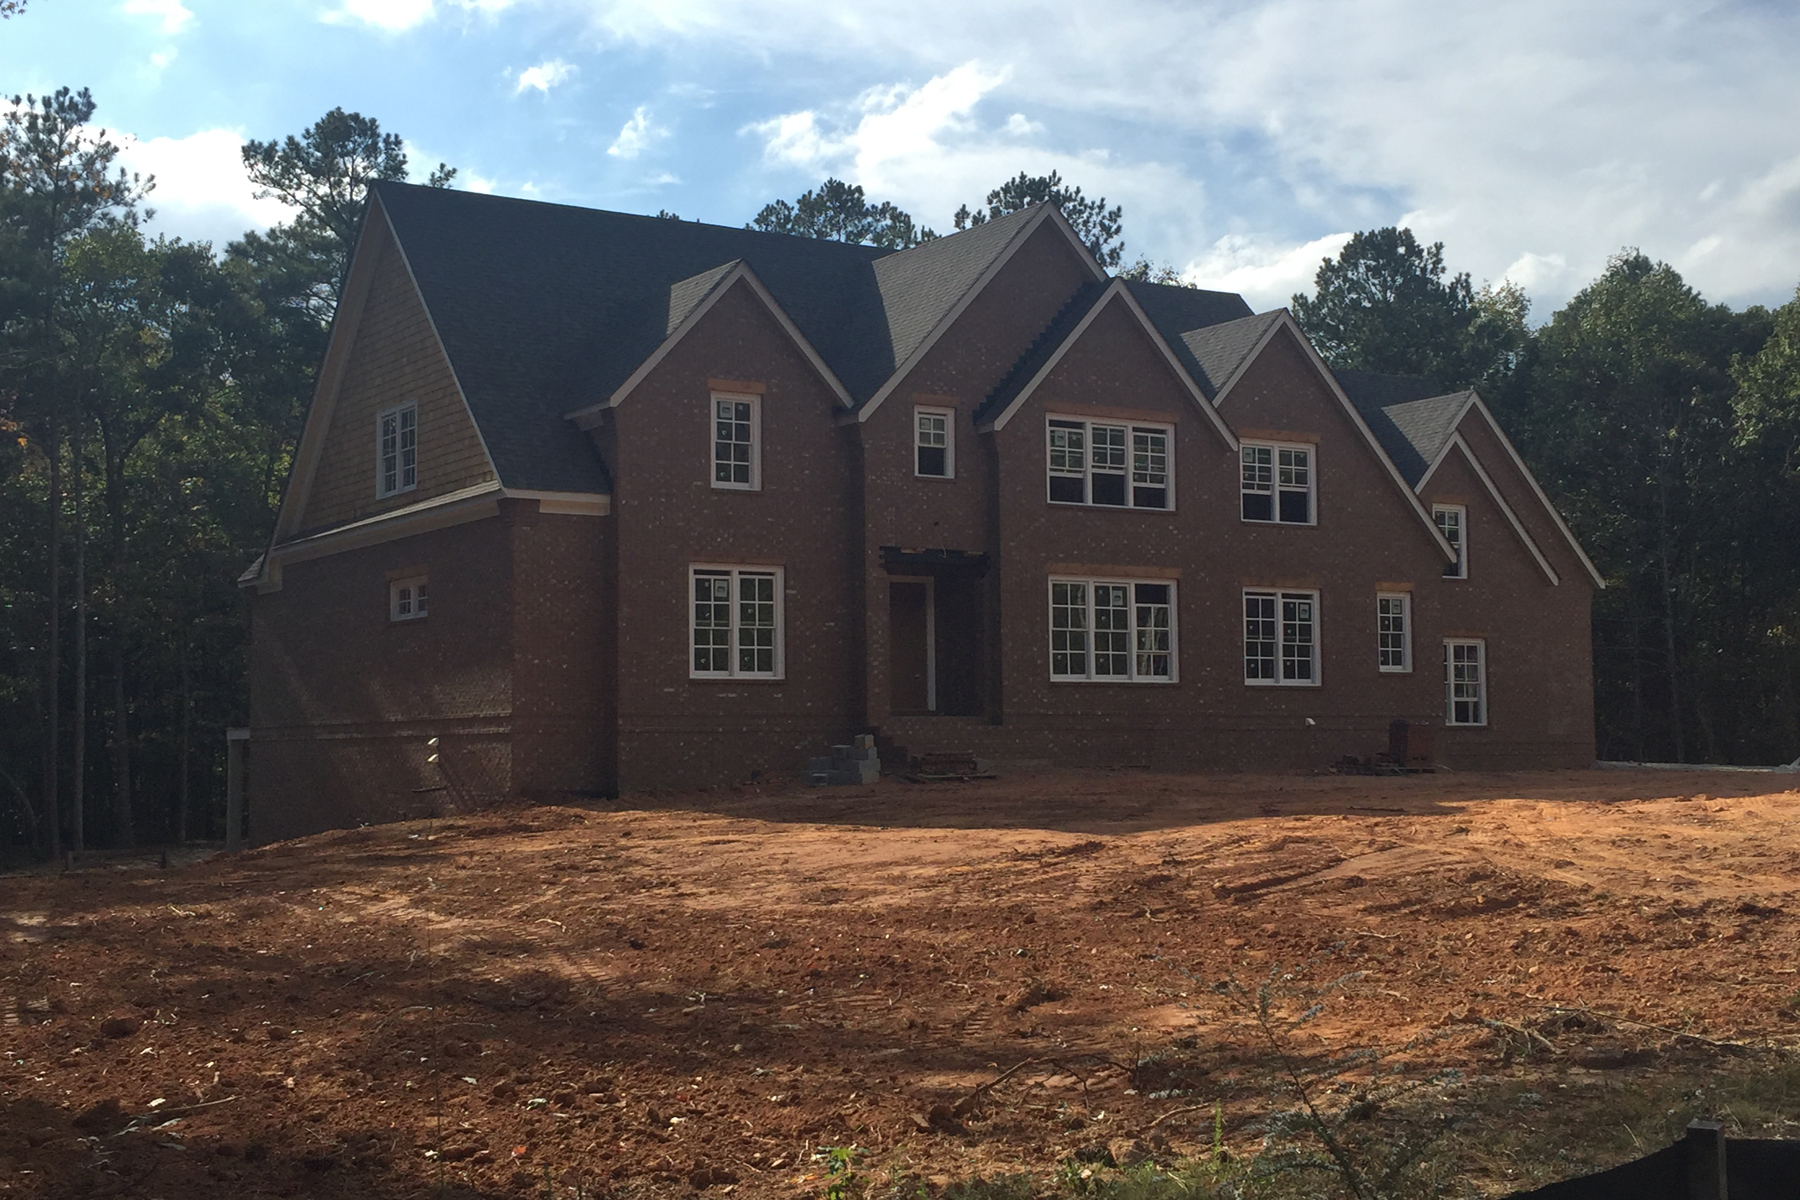 Single Family Home for Active at New Construction In McIntosh School District On Five Acres 205 Diamond Point Fayetteville, Georgia 30215 United States